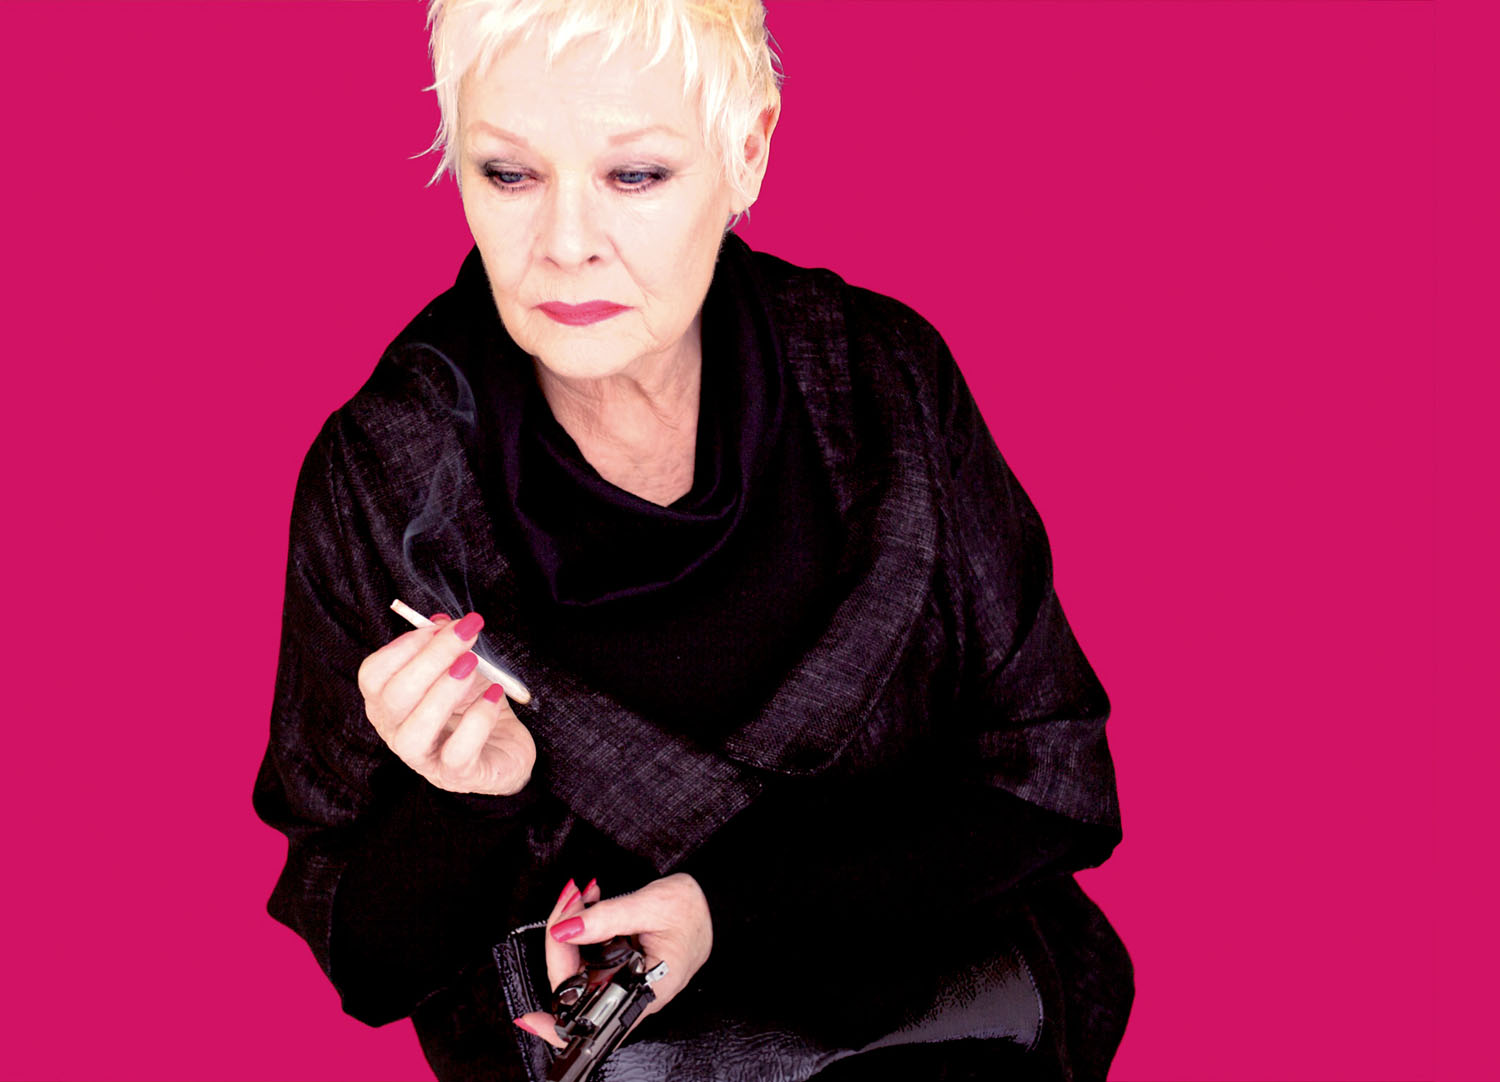 Judi Dench images Rage2009 HD wallpaper and background photos 1500x1082